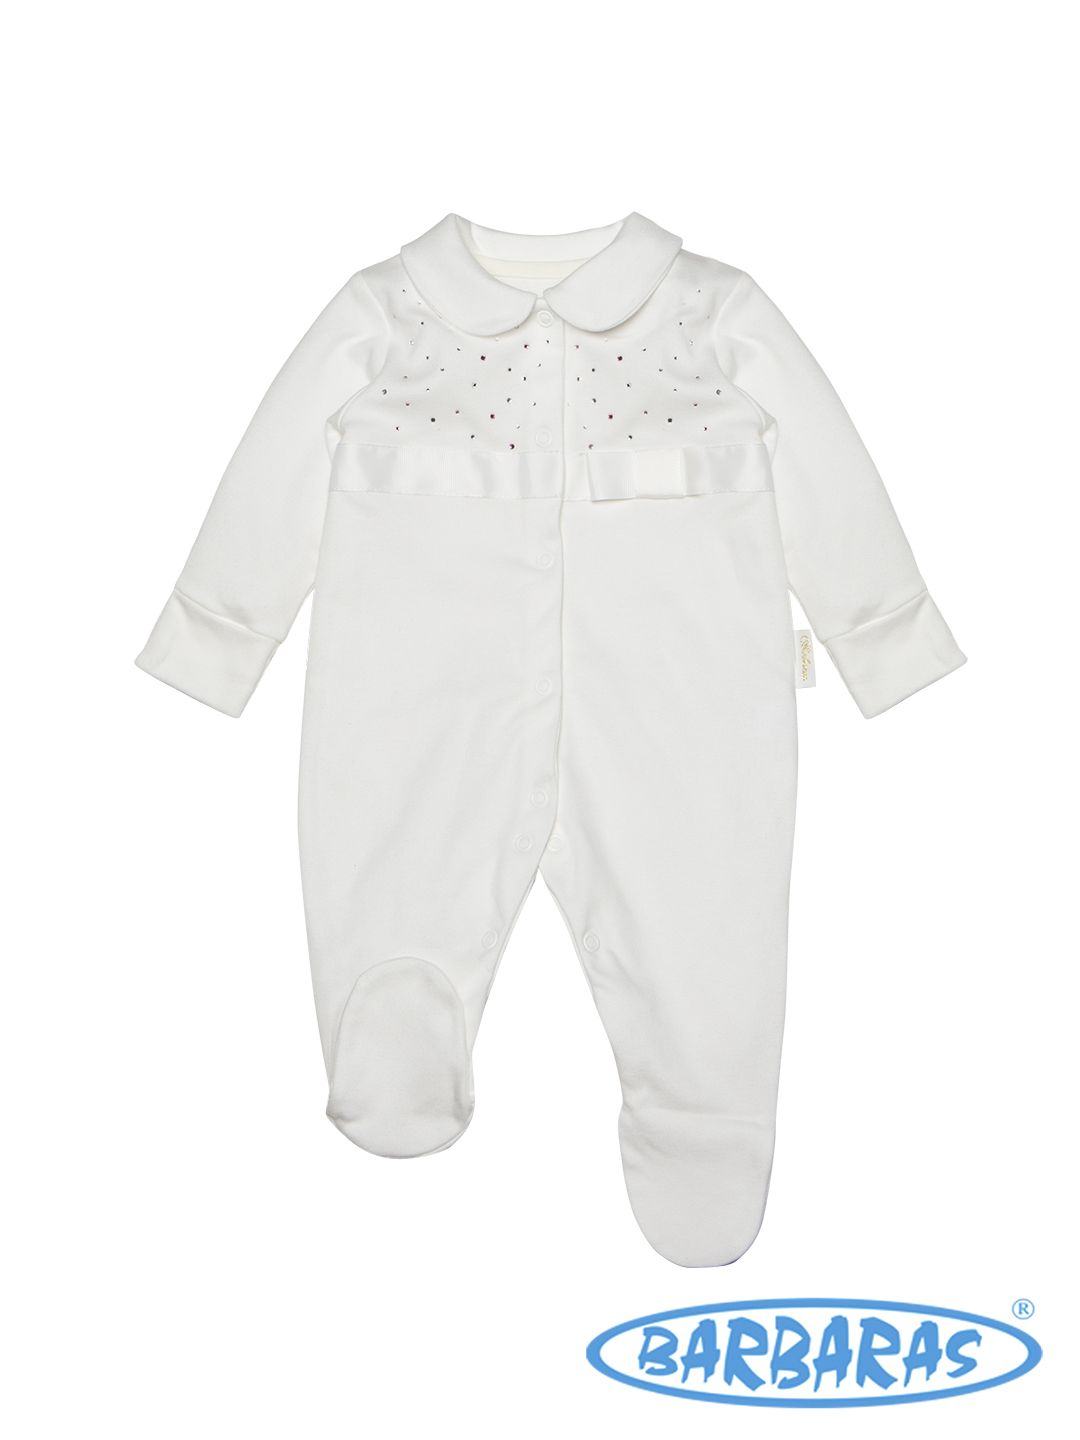 """Sleepsuit   100% cotton Certificate:  """"Safe for Baby"""", """"Eco 5"""" www.barbaras.pl"""